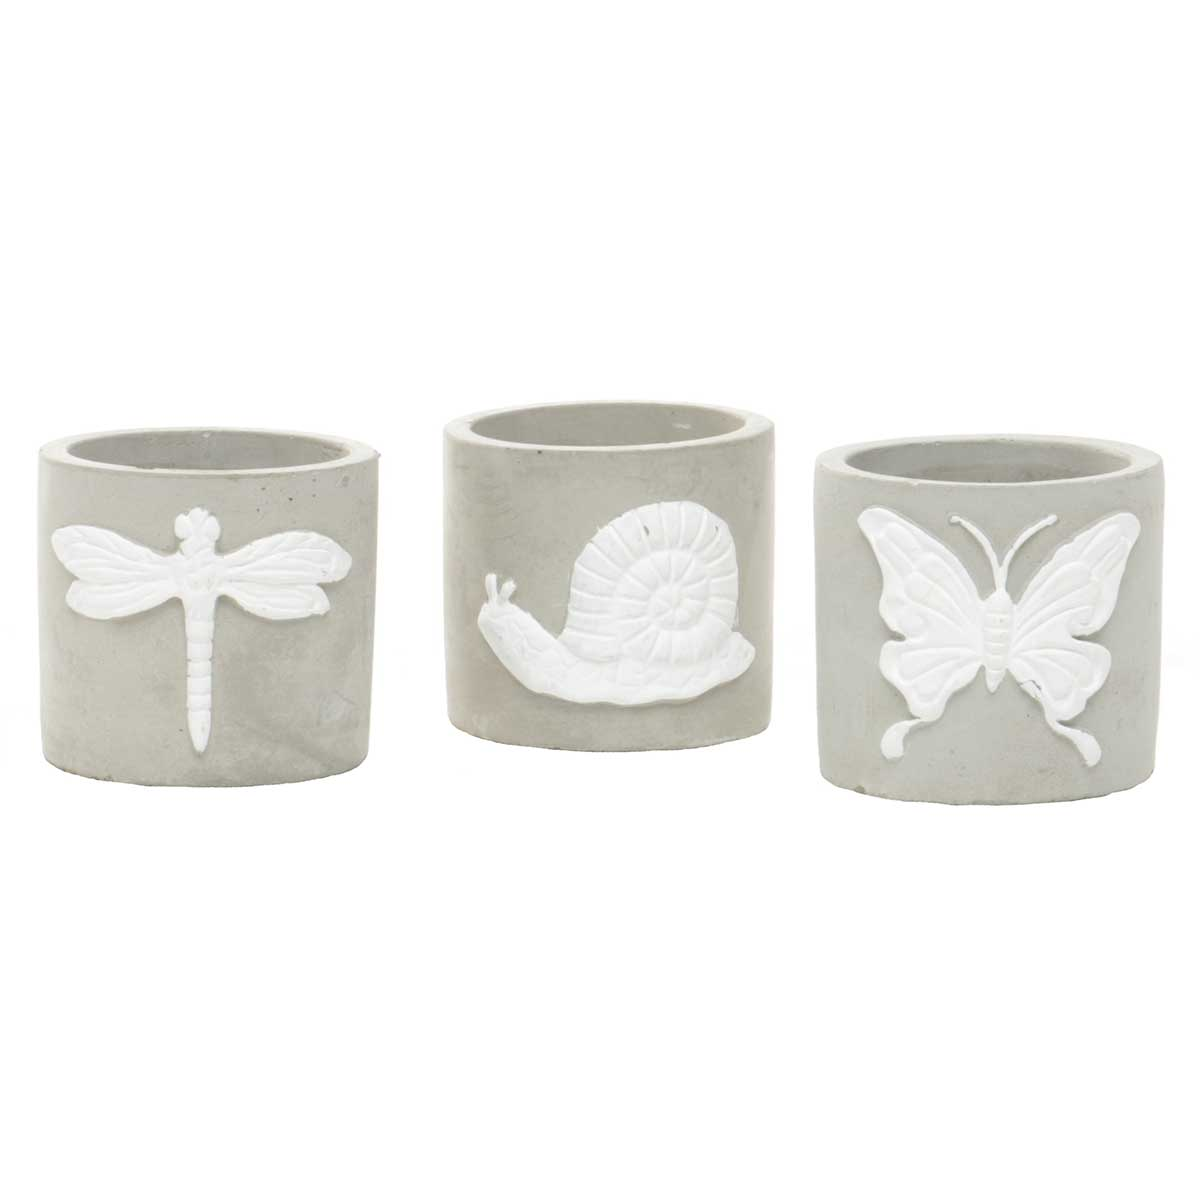 "GARDEN FRIENDS POT 3""X2.75"" SET OF 3"